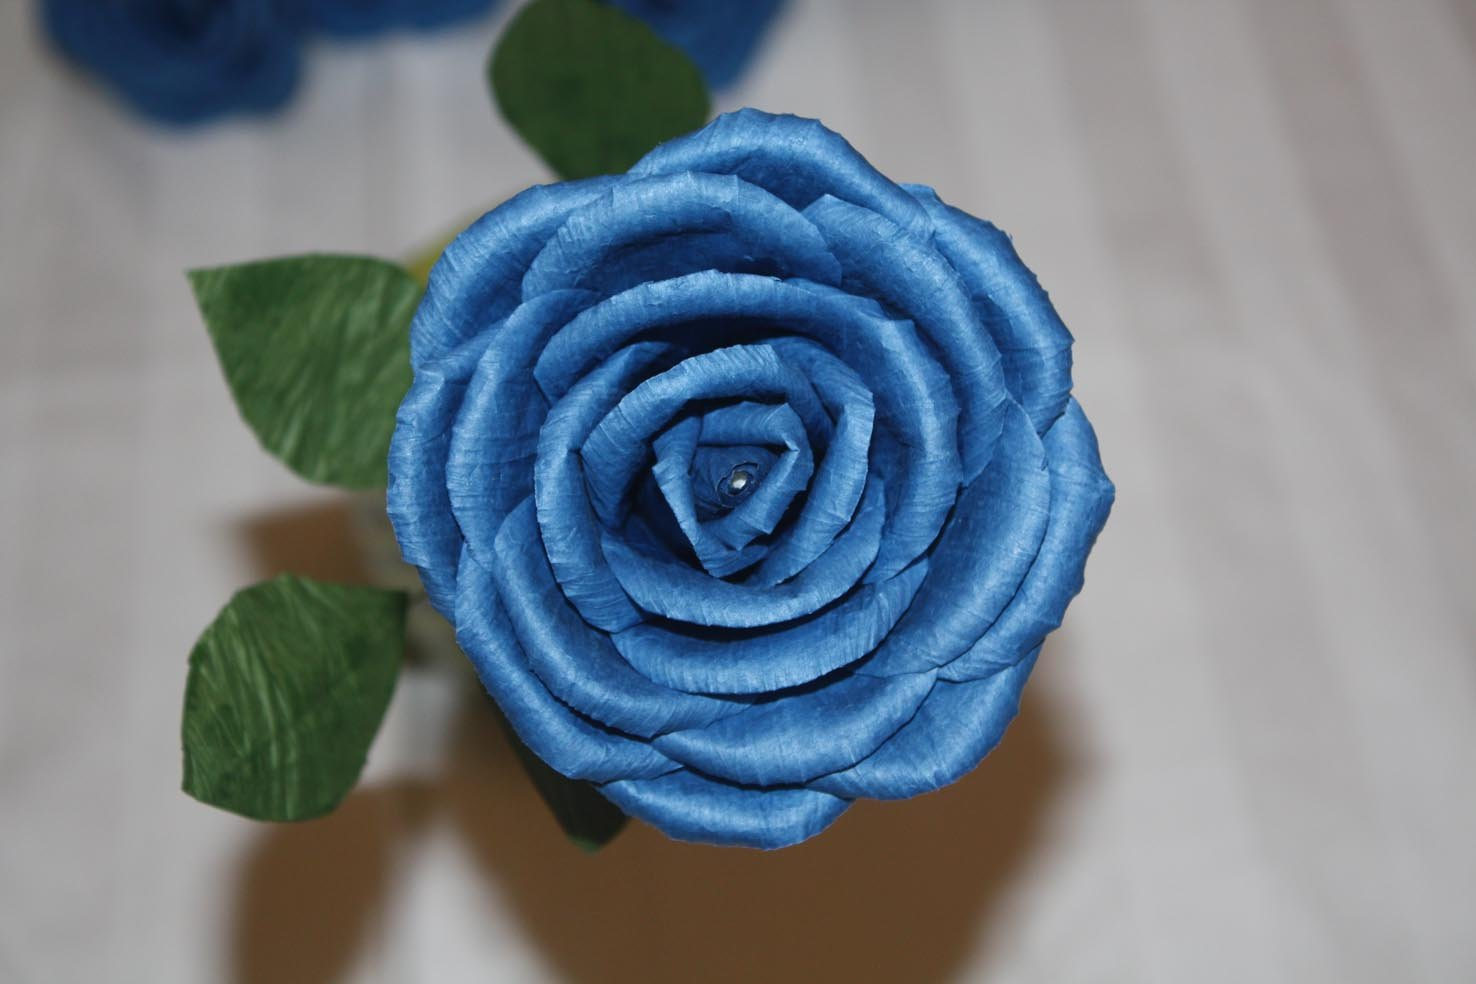 Ups free shipping 100 pieces of blue roses wooden for How are blue roses made